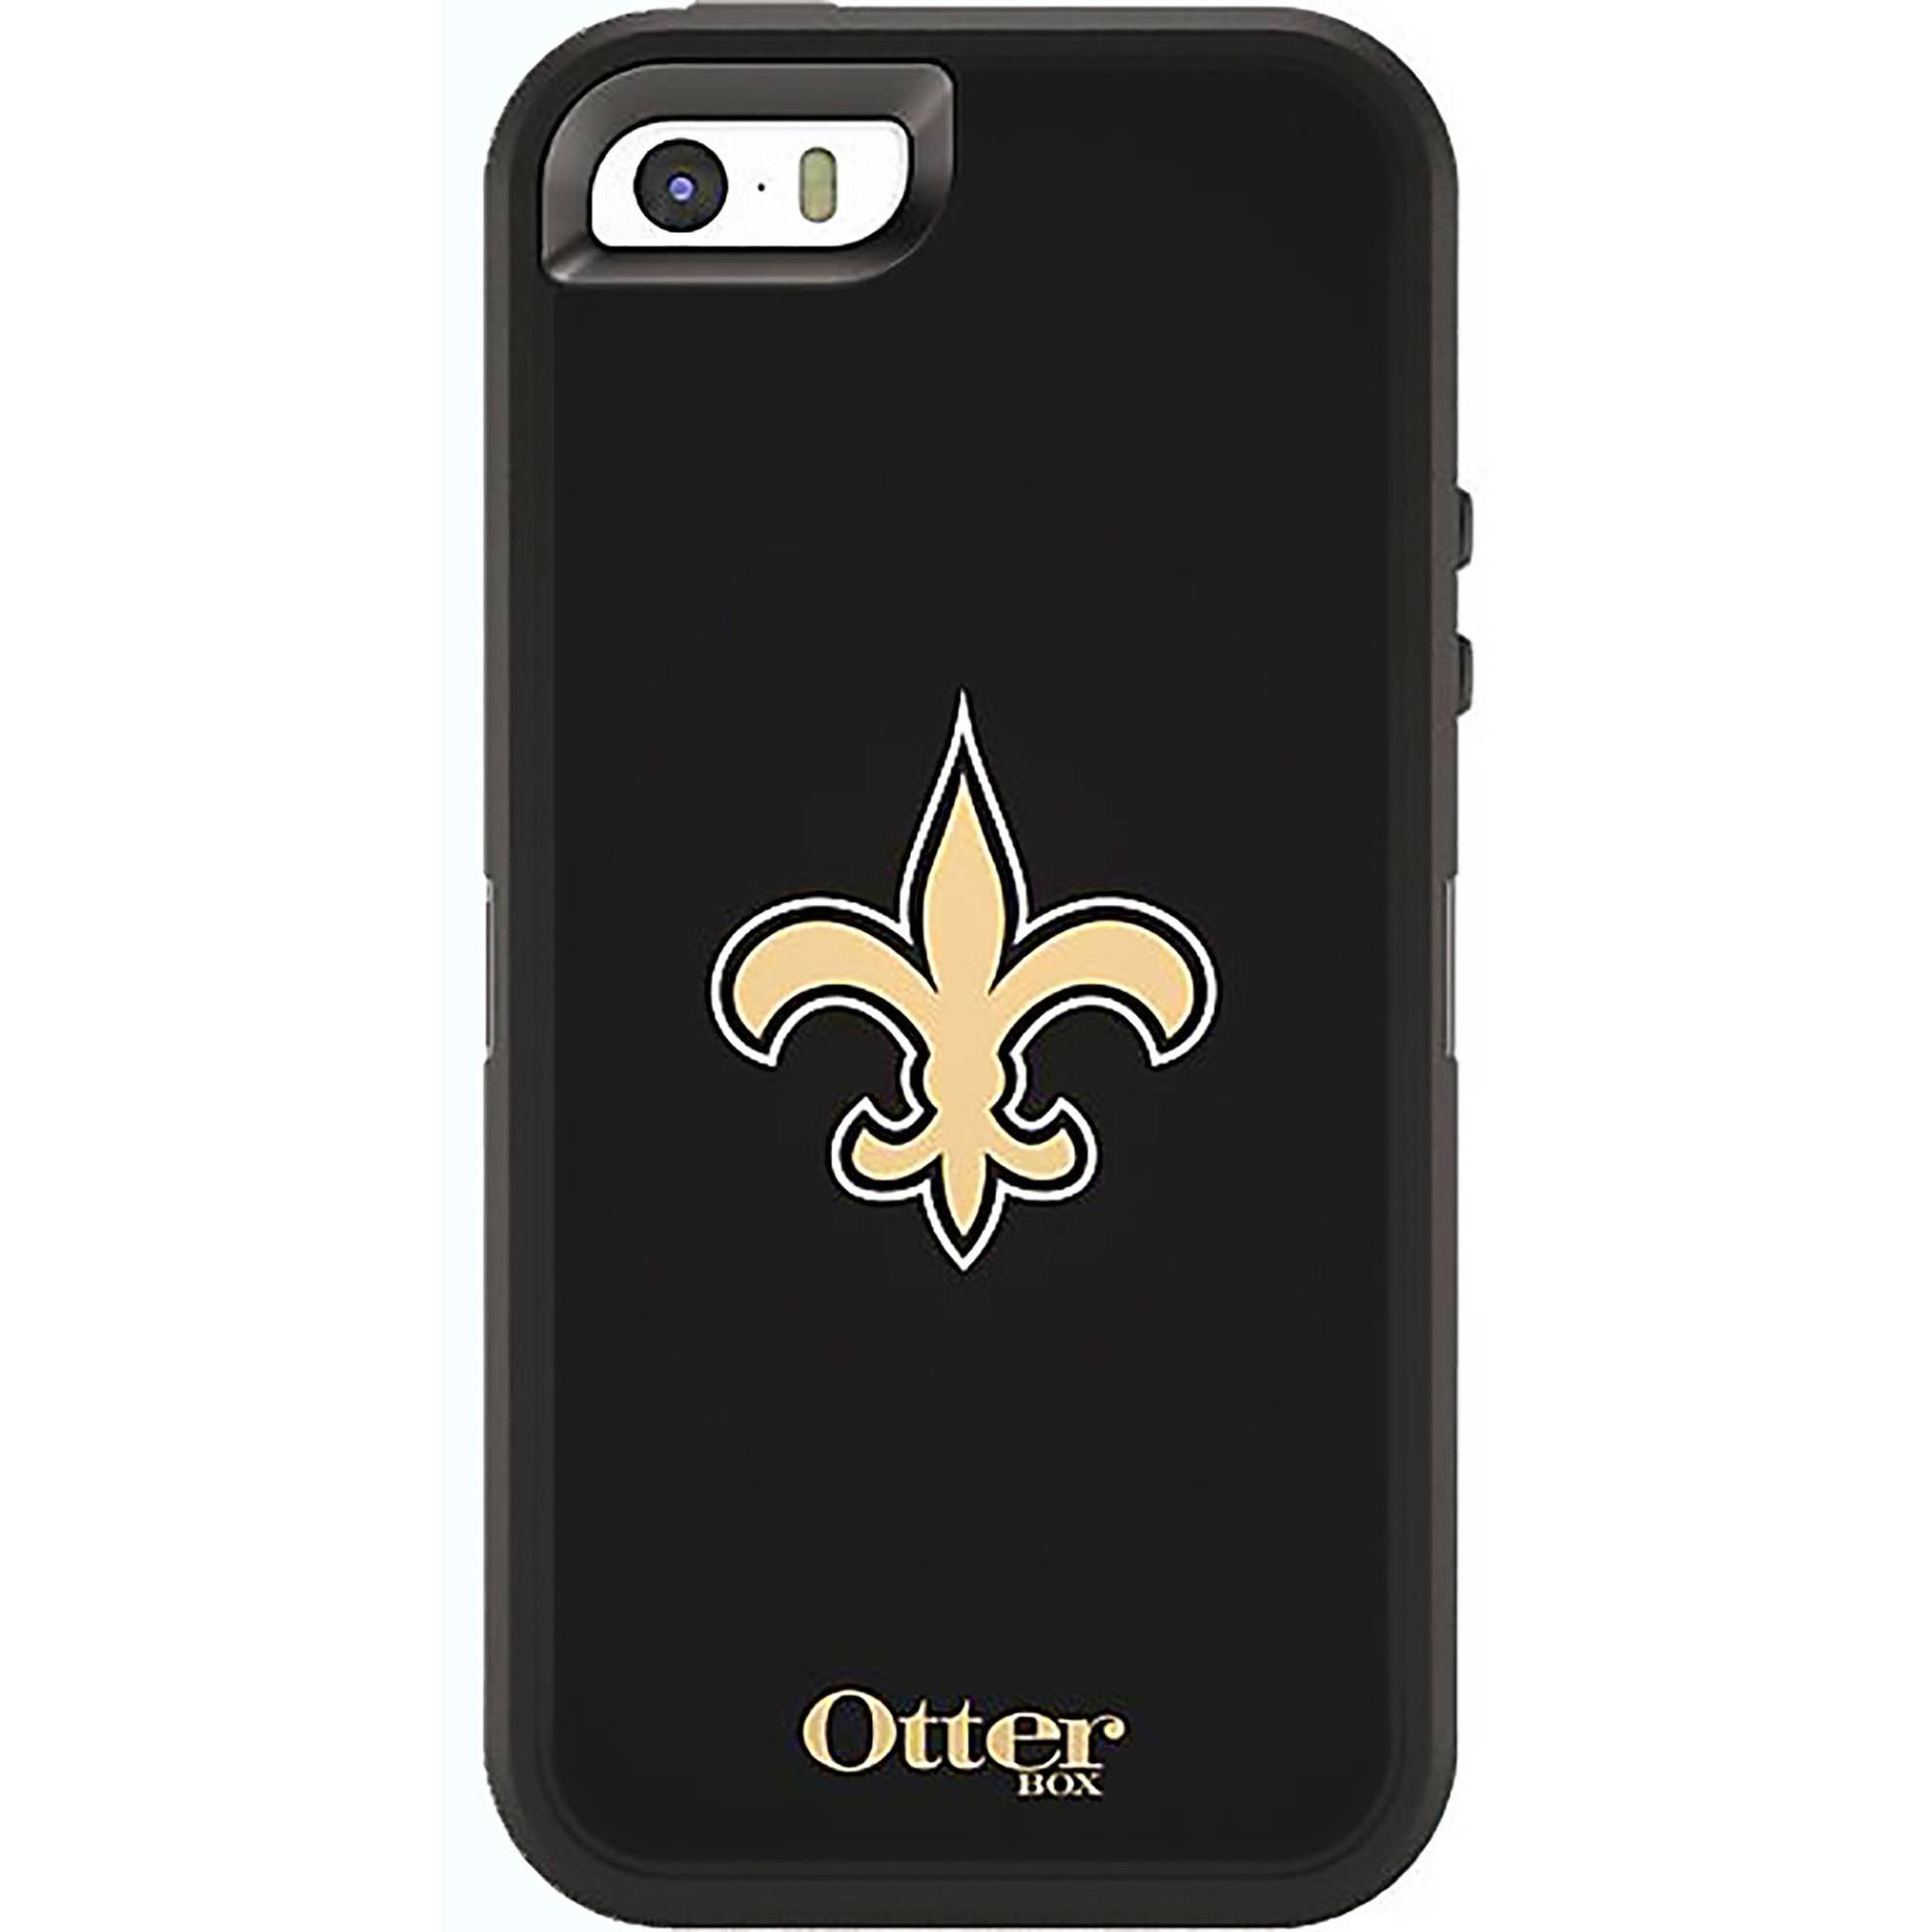 otterbox defender nfl series case for apple iphone 5s5se